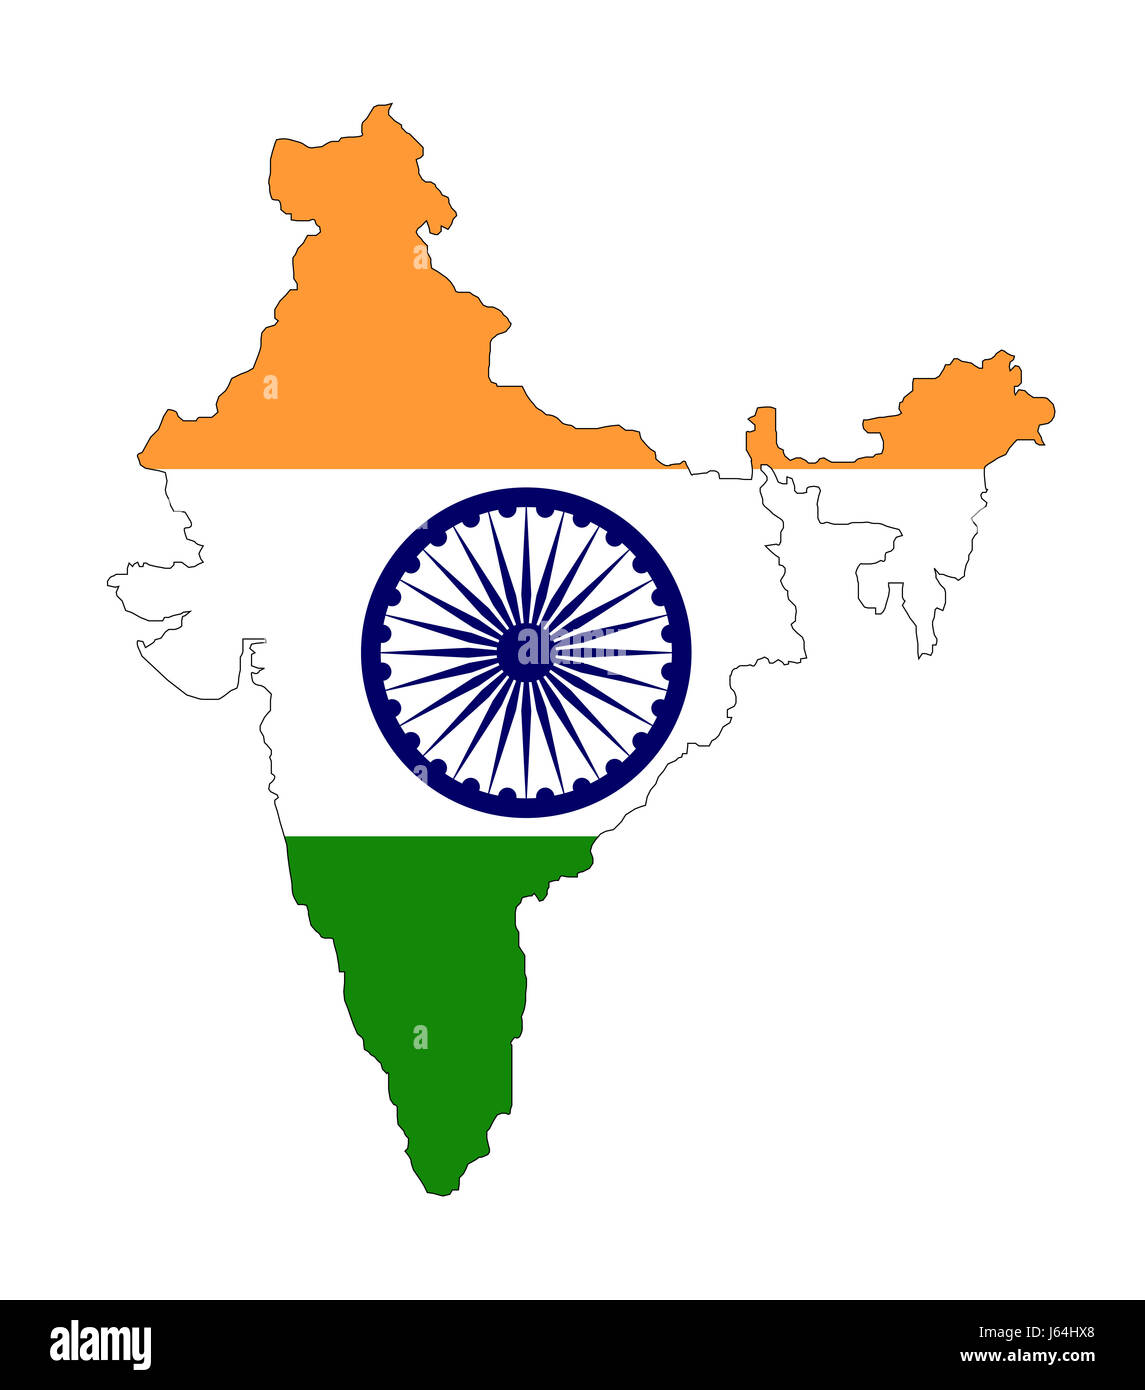 Asia india flag map atlas map of the world asia india flag asia india flag map atlas map of the world asia india flag geography map atlas gumiabroncs Gallery